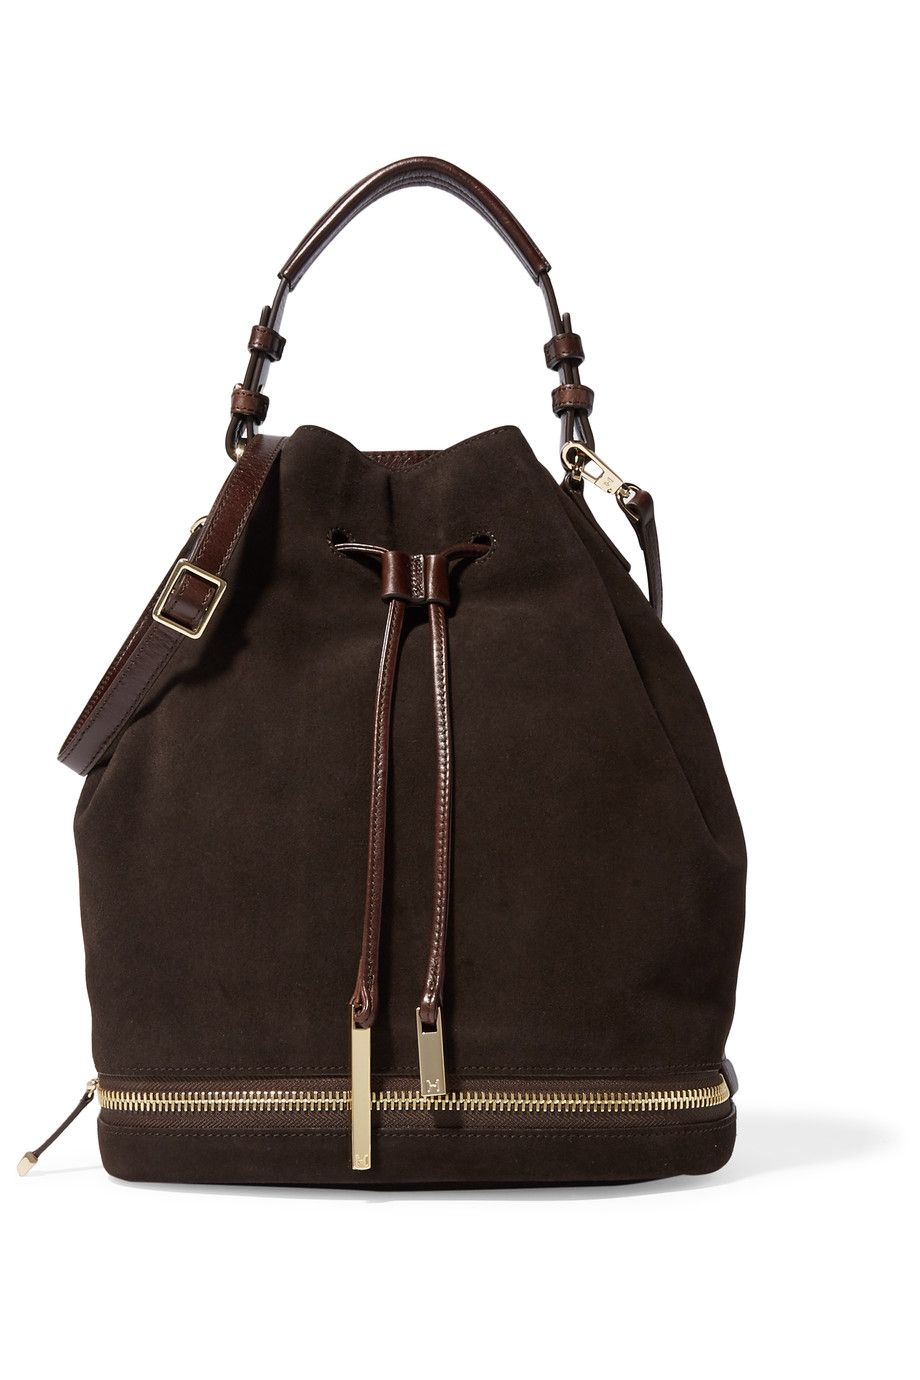 HALSTON HERITAGE Suede And Coated-Leather Shoulder Bag.  halstonheritage   bags  shoulder bags  hand bags  suede   05c6283380353